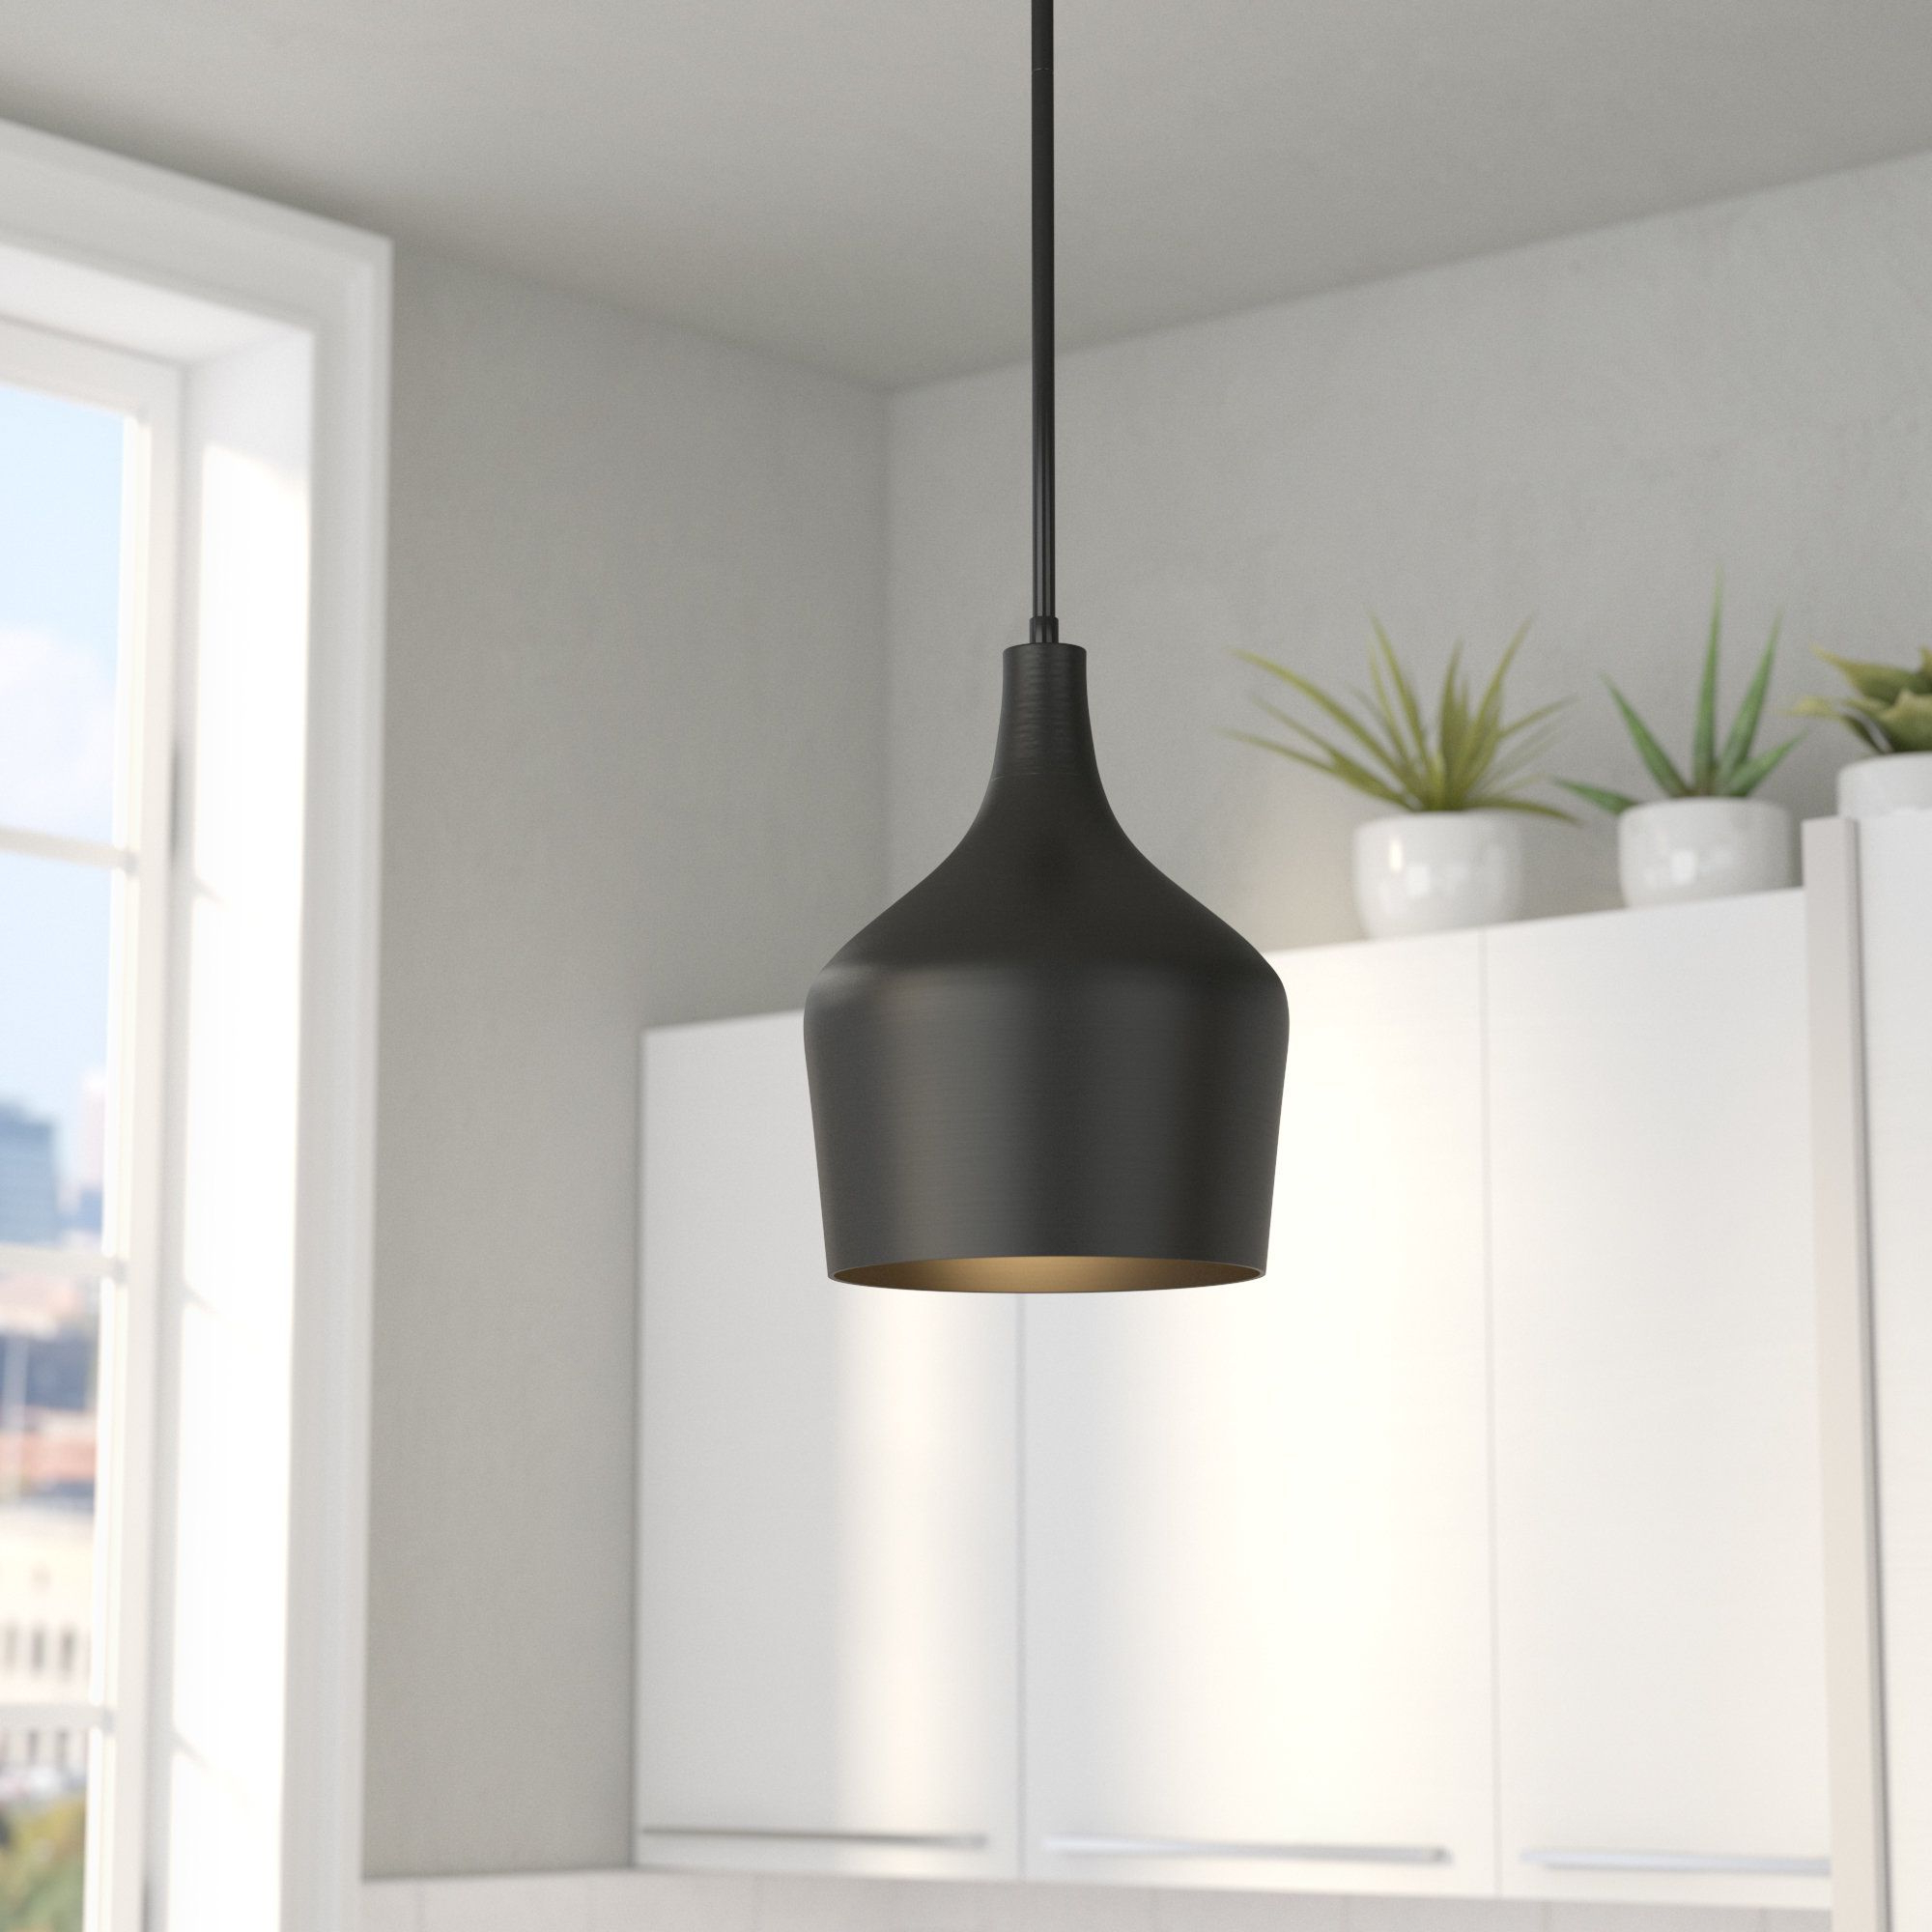 Knoxville 1 Light Single Teardrop Pendants With 2019 Knoxville 1 Light Geometric Pendant (Gallery 10 of 25)